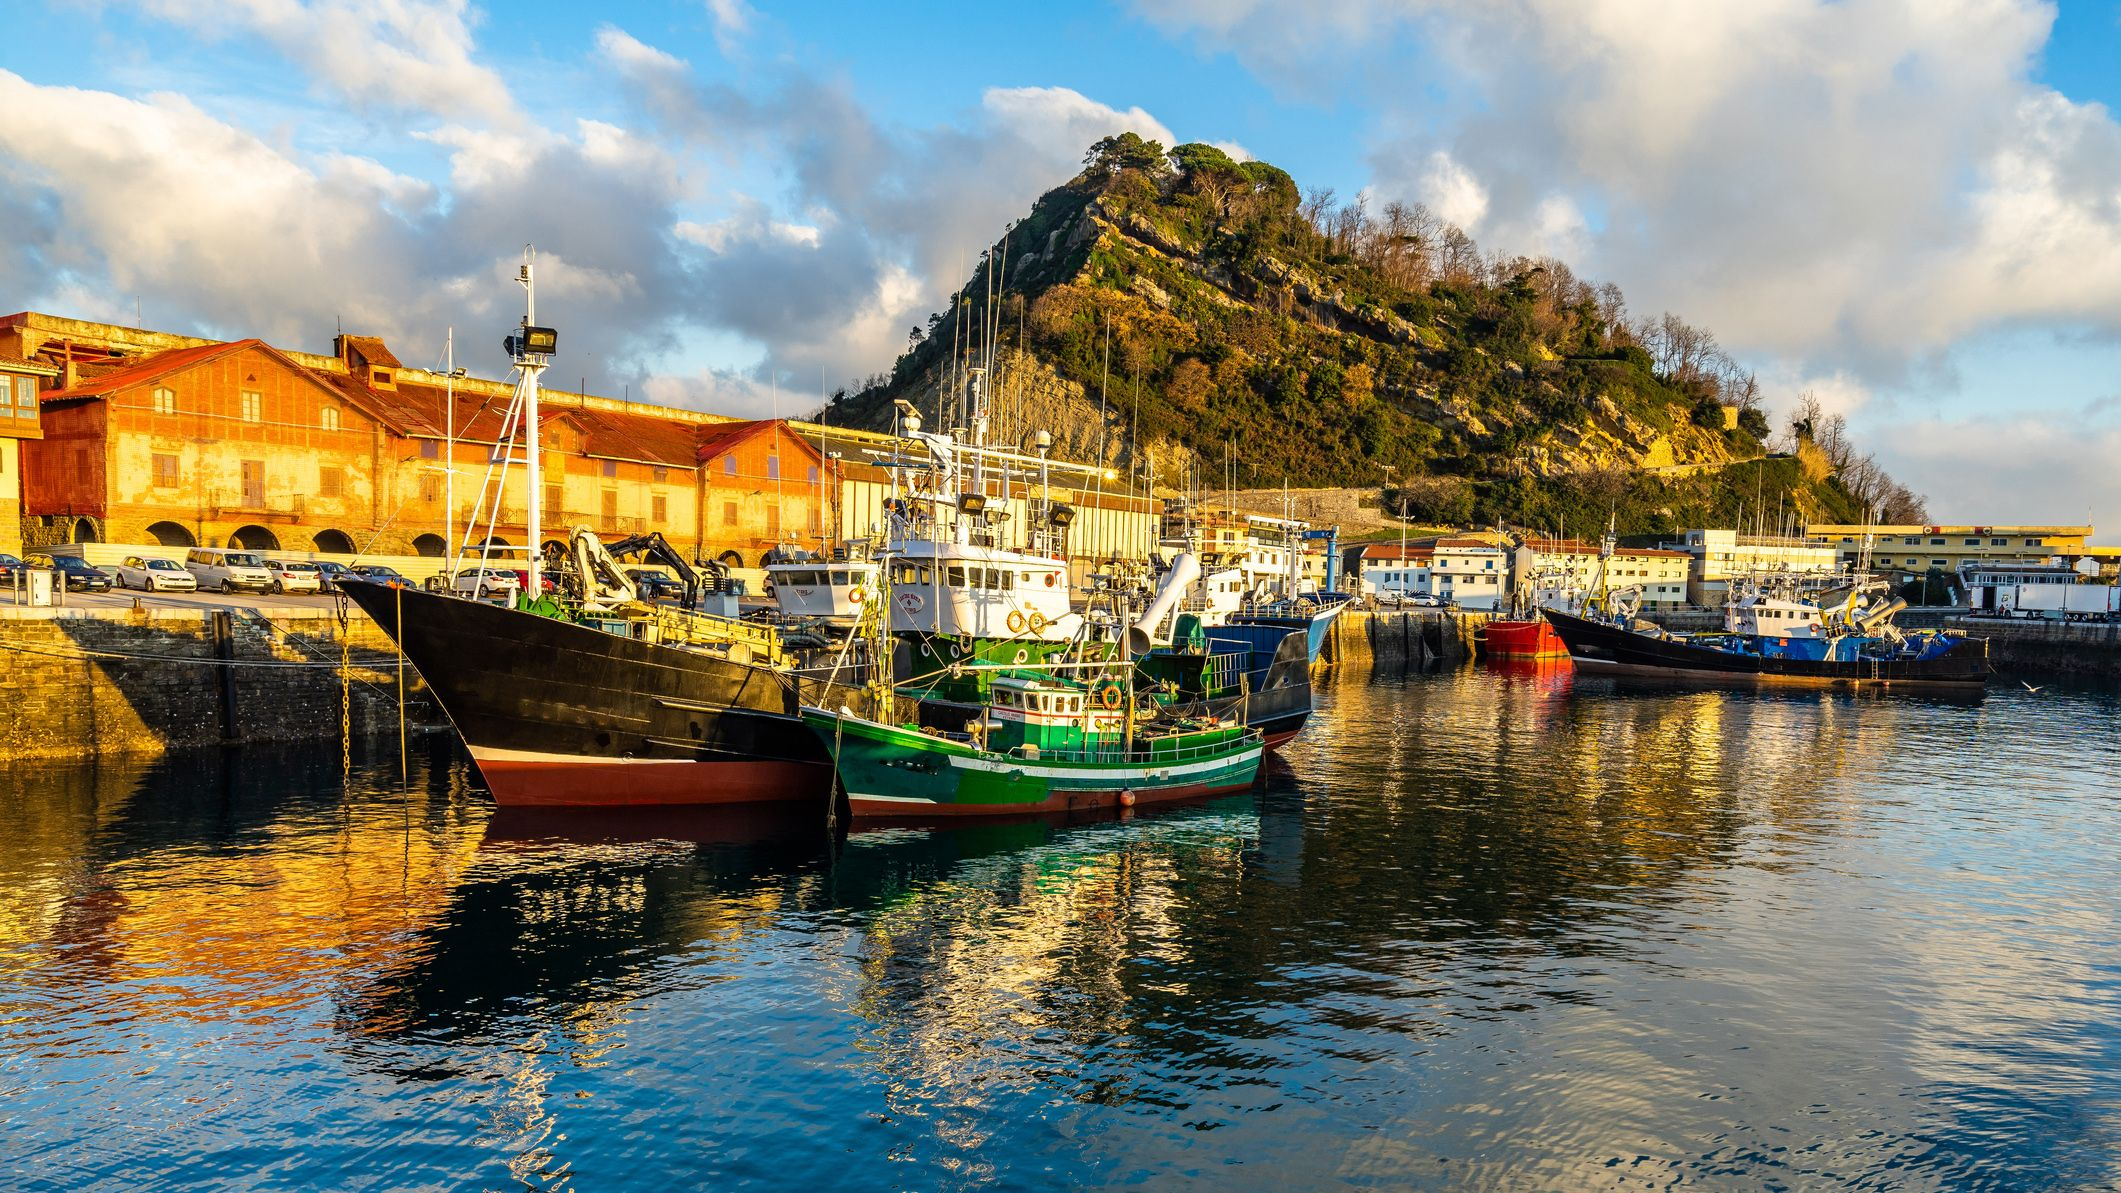 Getaria is home to Restaurante Elkano, currently ranked 30th best restaurant in the world (Credit: Font83/Getty Images)